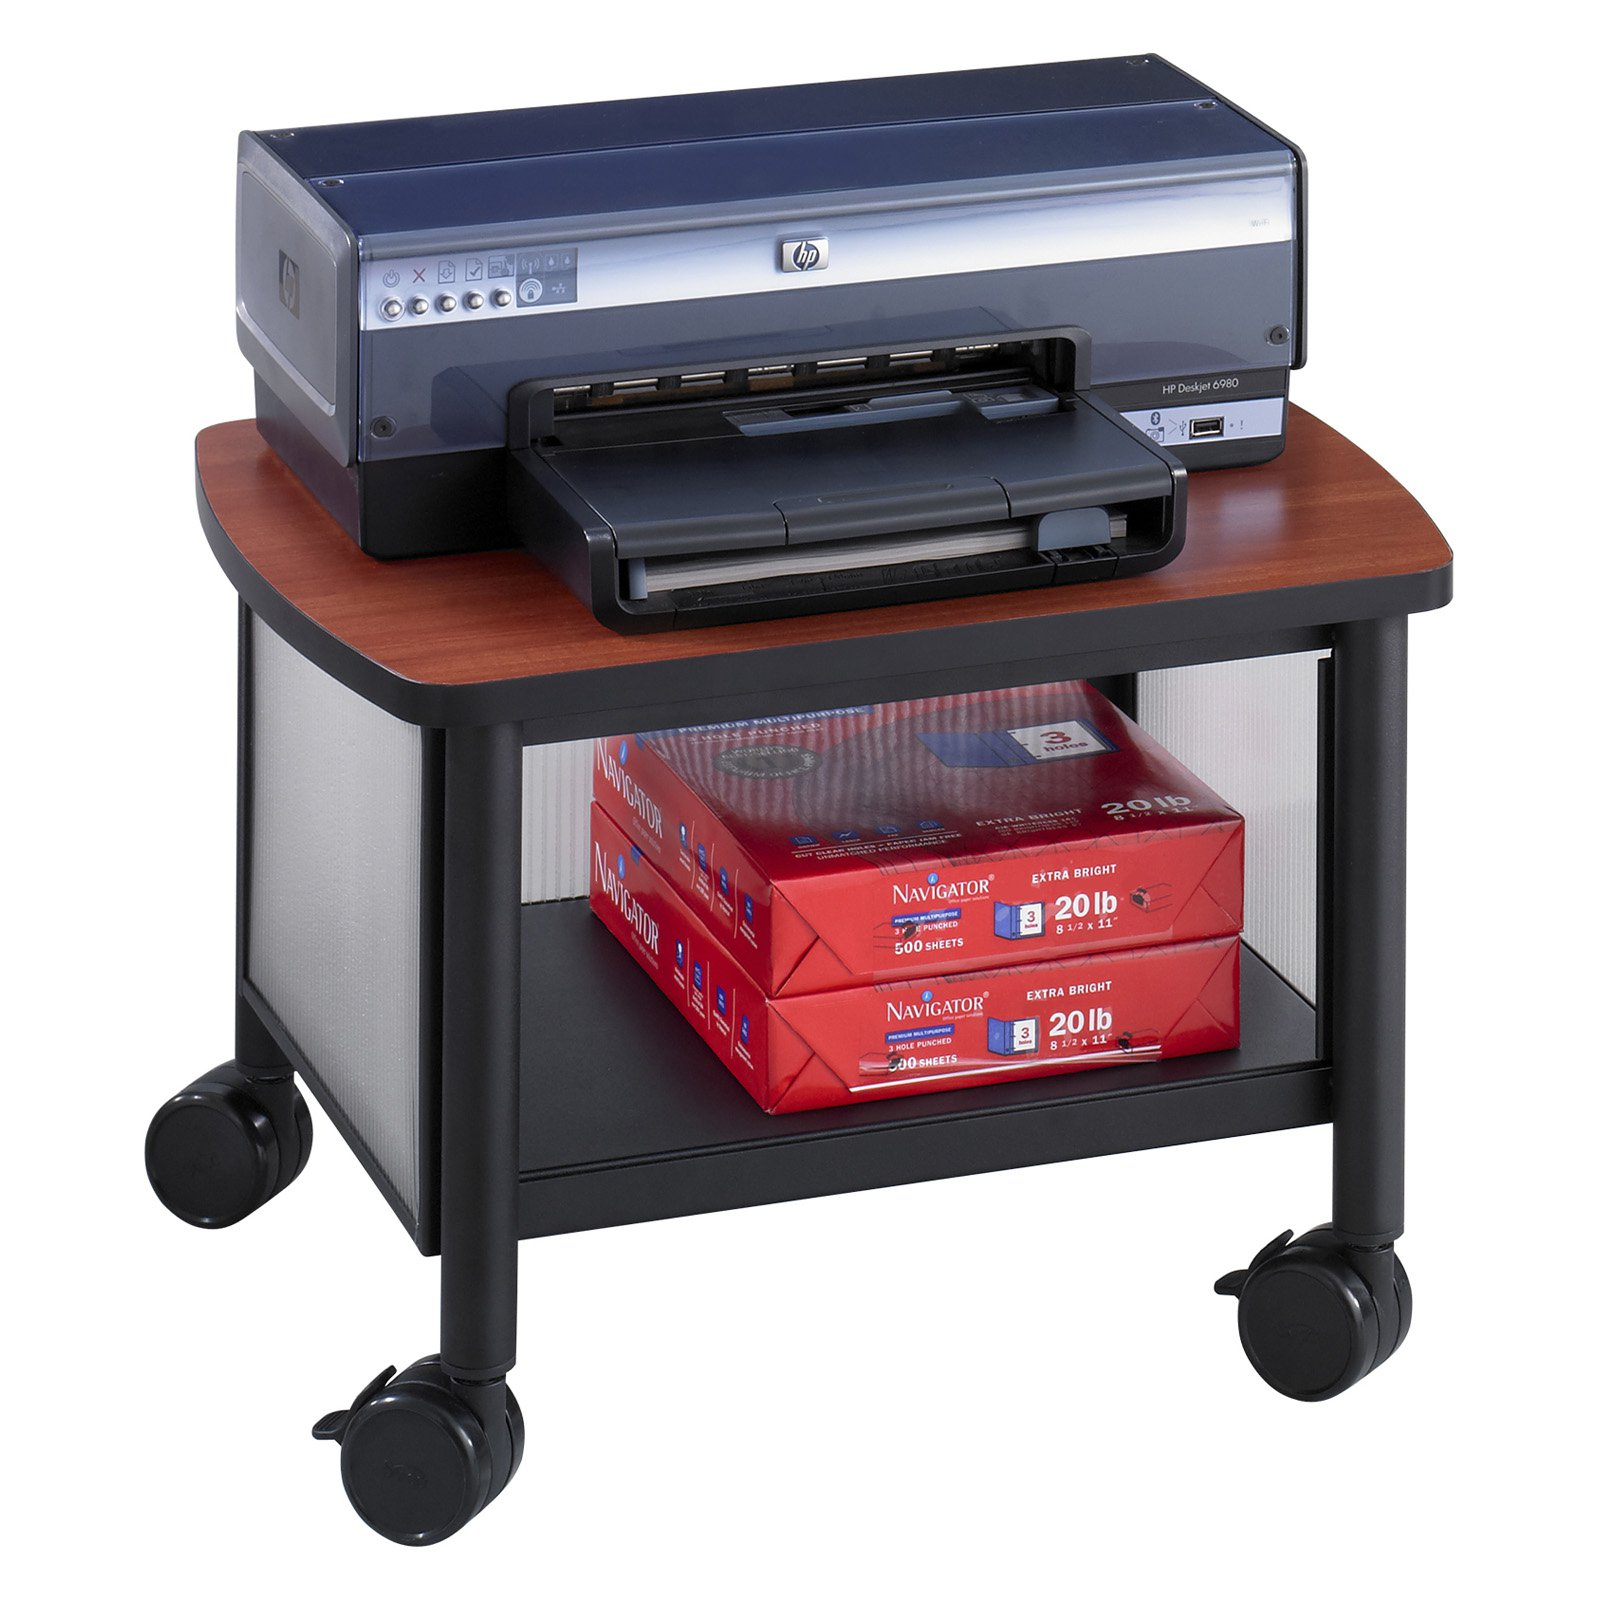 "Safco Impromptu Under Table Printer Stand, 20-1/2"" x 16-1/2"" x 14-1/2"", Black/Cherry"